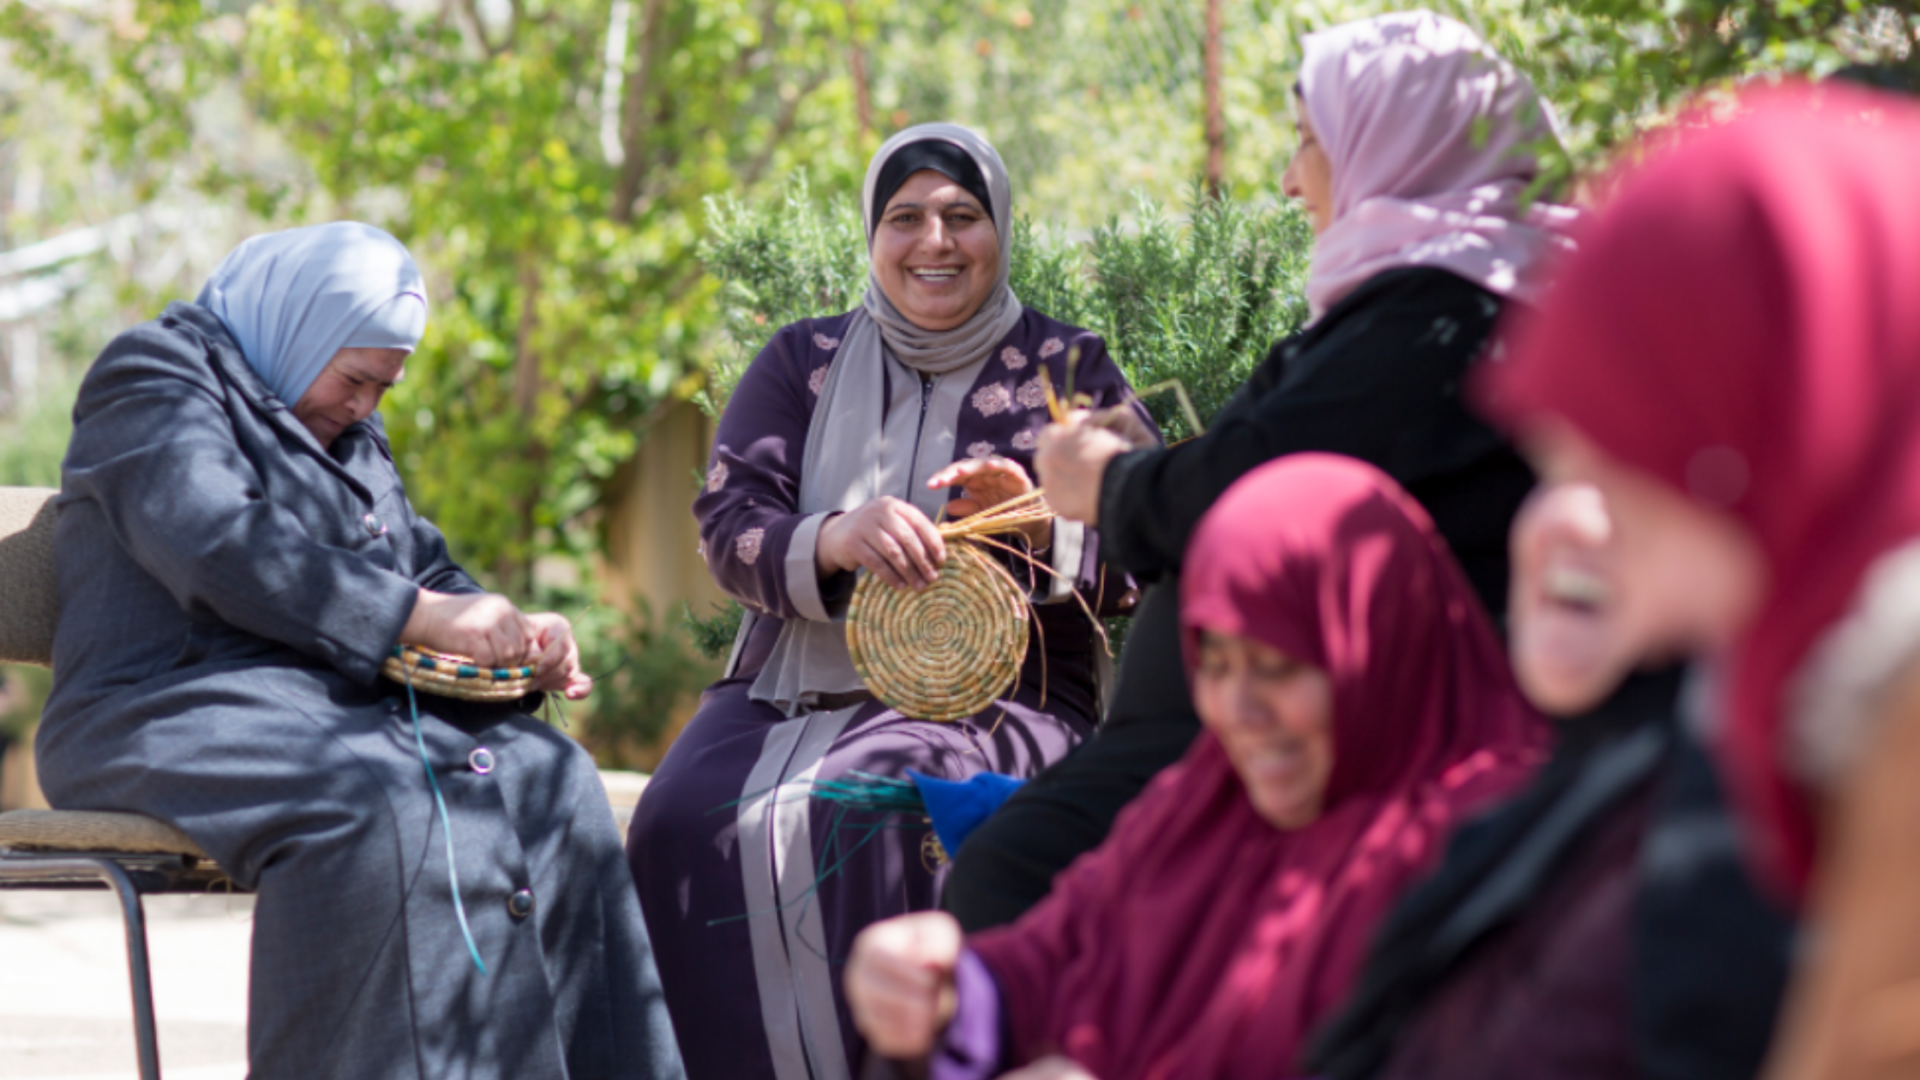 Sunbula's Covid-19 relief campaign helped 8 partner producer groups in Palestine – here's the story